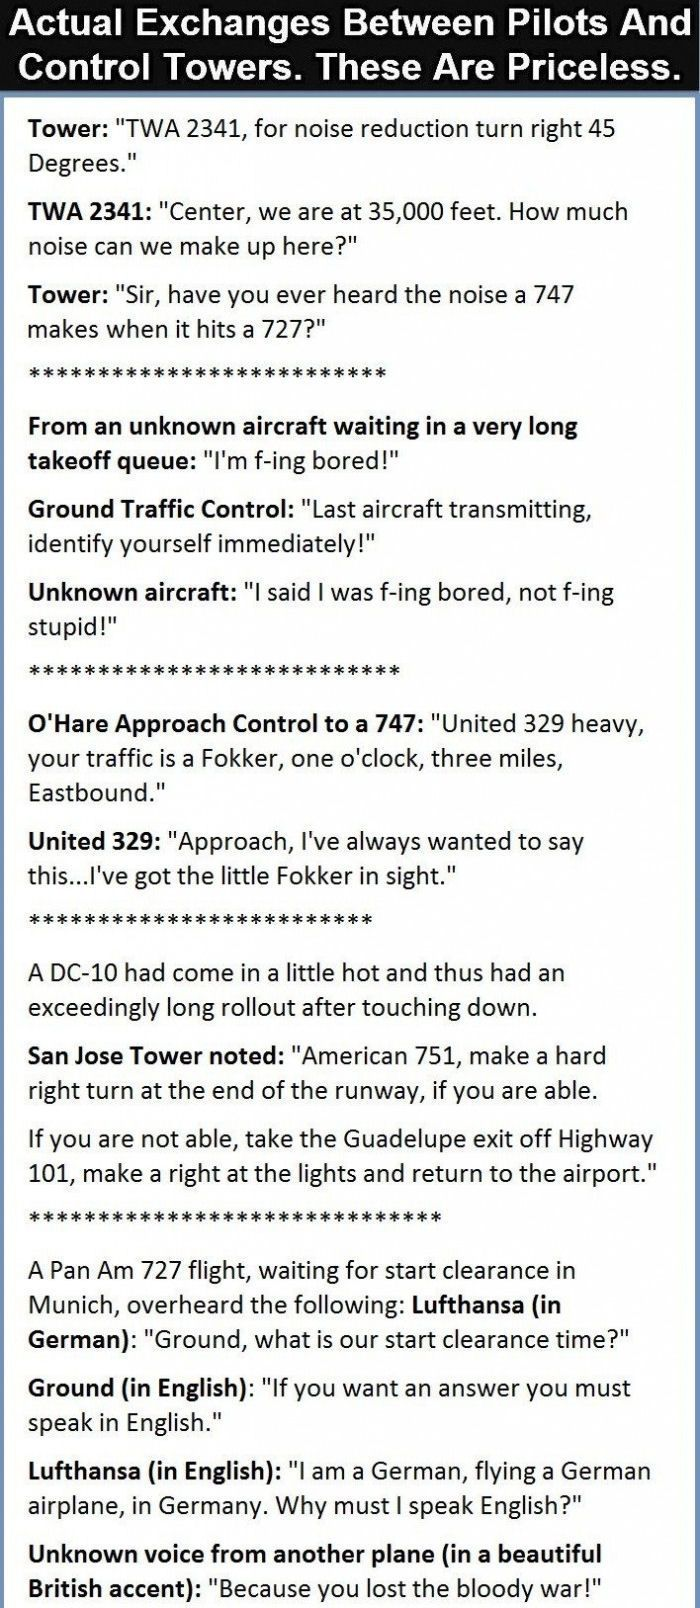 Actual Exchanges Between Pilots And Control Towers These Are Priceless funny jokes story lol funny quote funny quotes funny sayings joke humor stories airline pilots